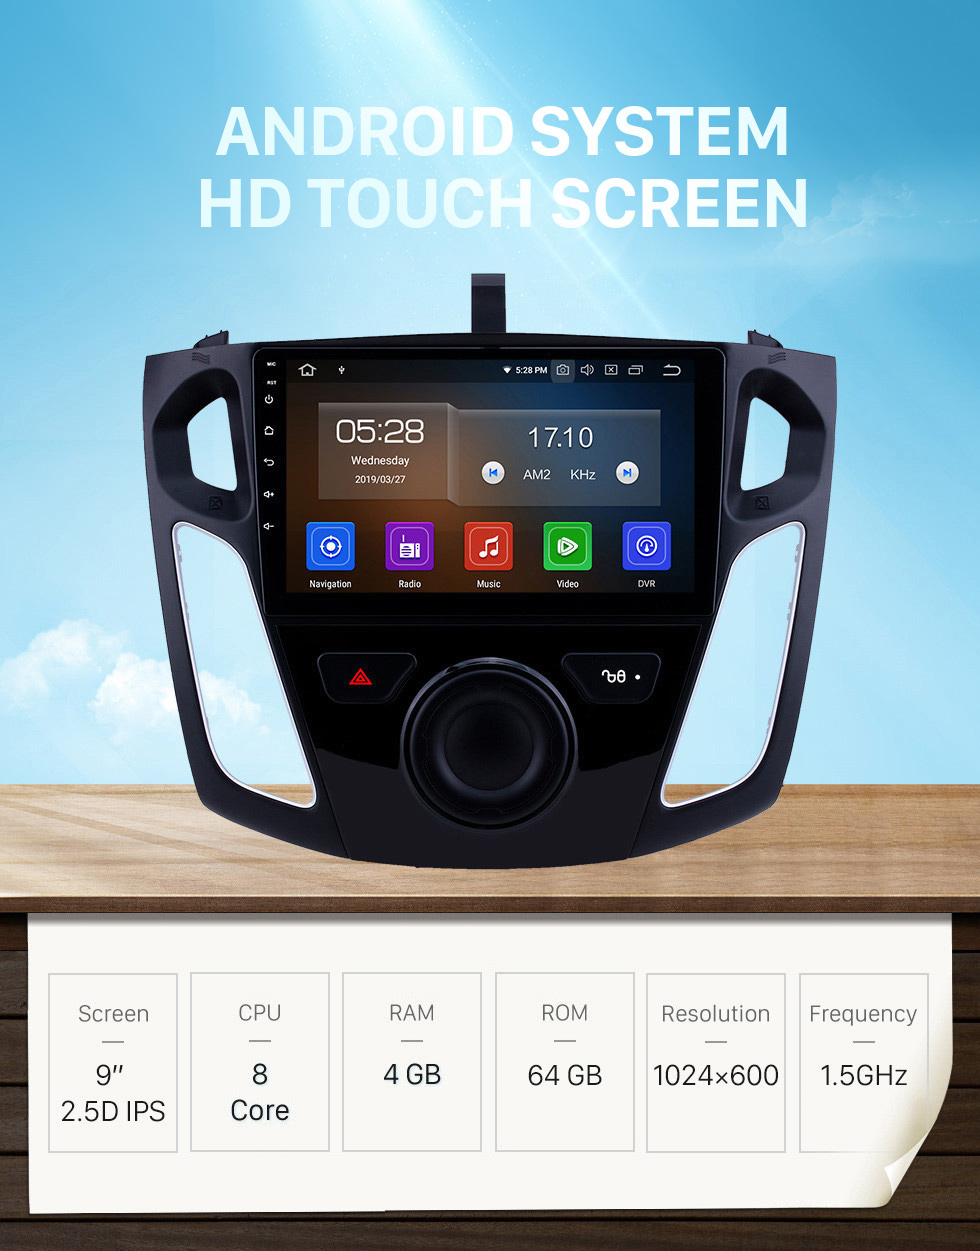 Seicane OEM 9 inch Android 10.0 Radio for 2012-2015 Ford Focus Bluetooth Wifi HD Touchscreen GPS Navigation Carplay USB support OBD2 Digital TV TPMS DAB+